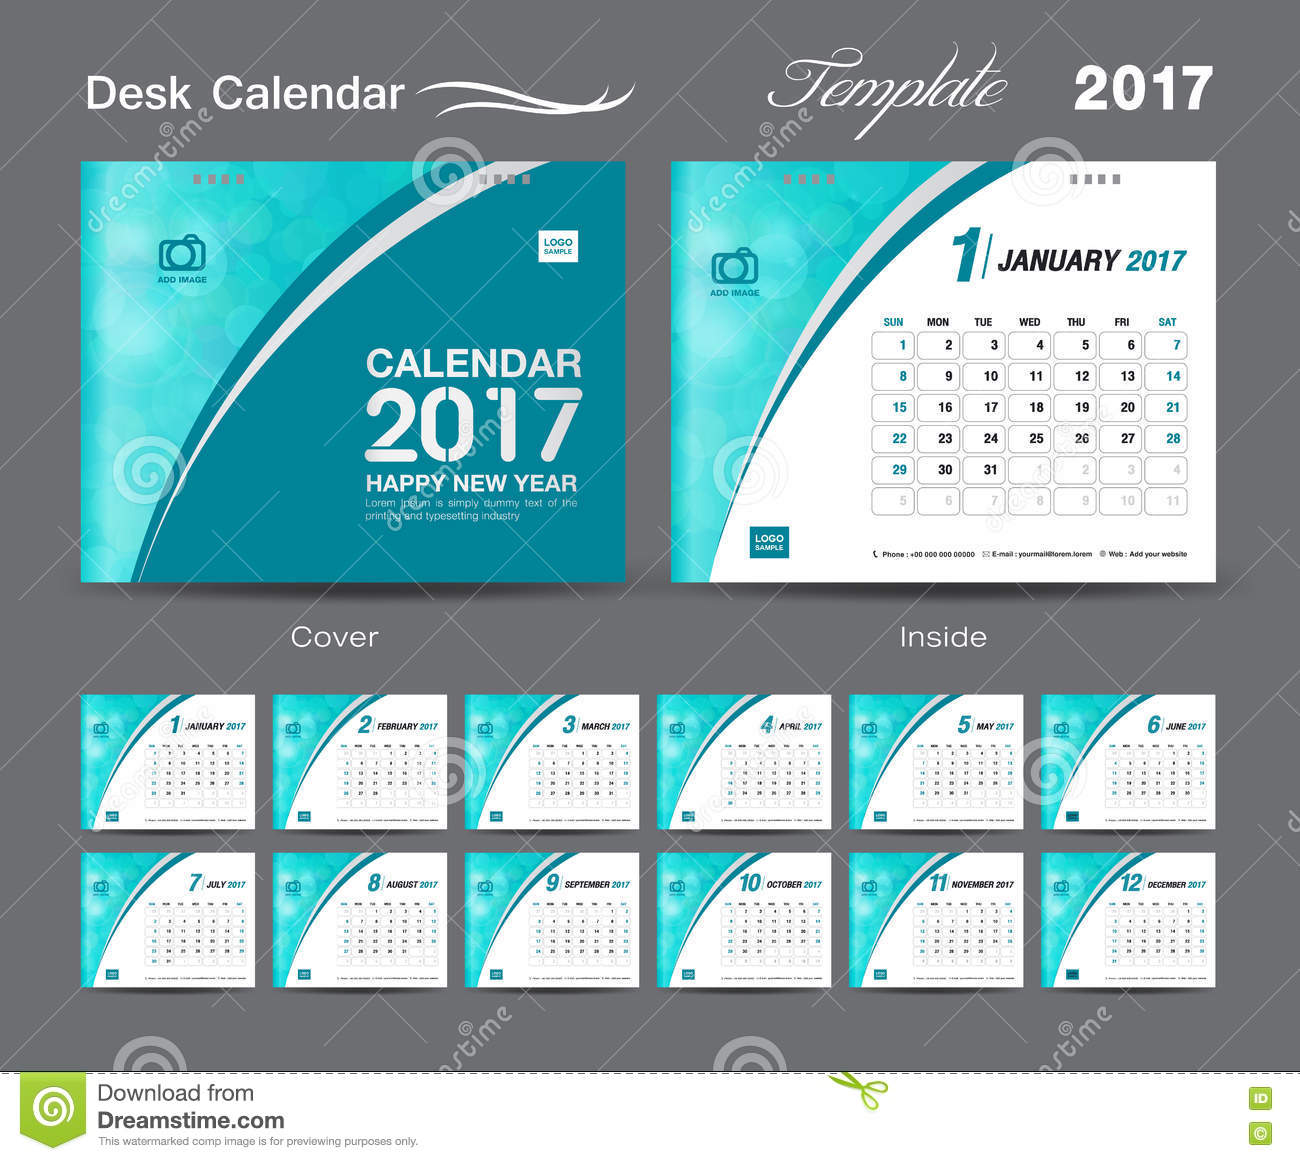 Cover Calendar Design Vector : Desk calendar template design set cover